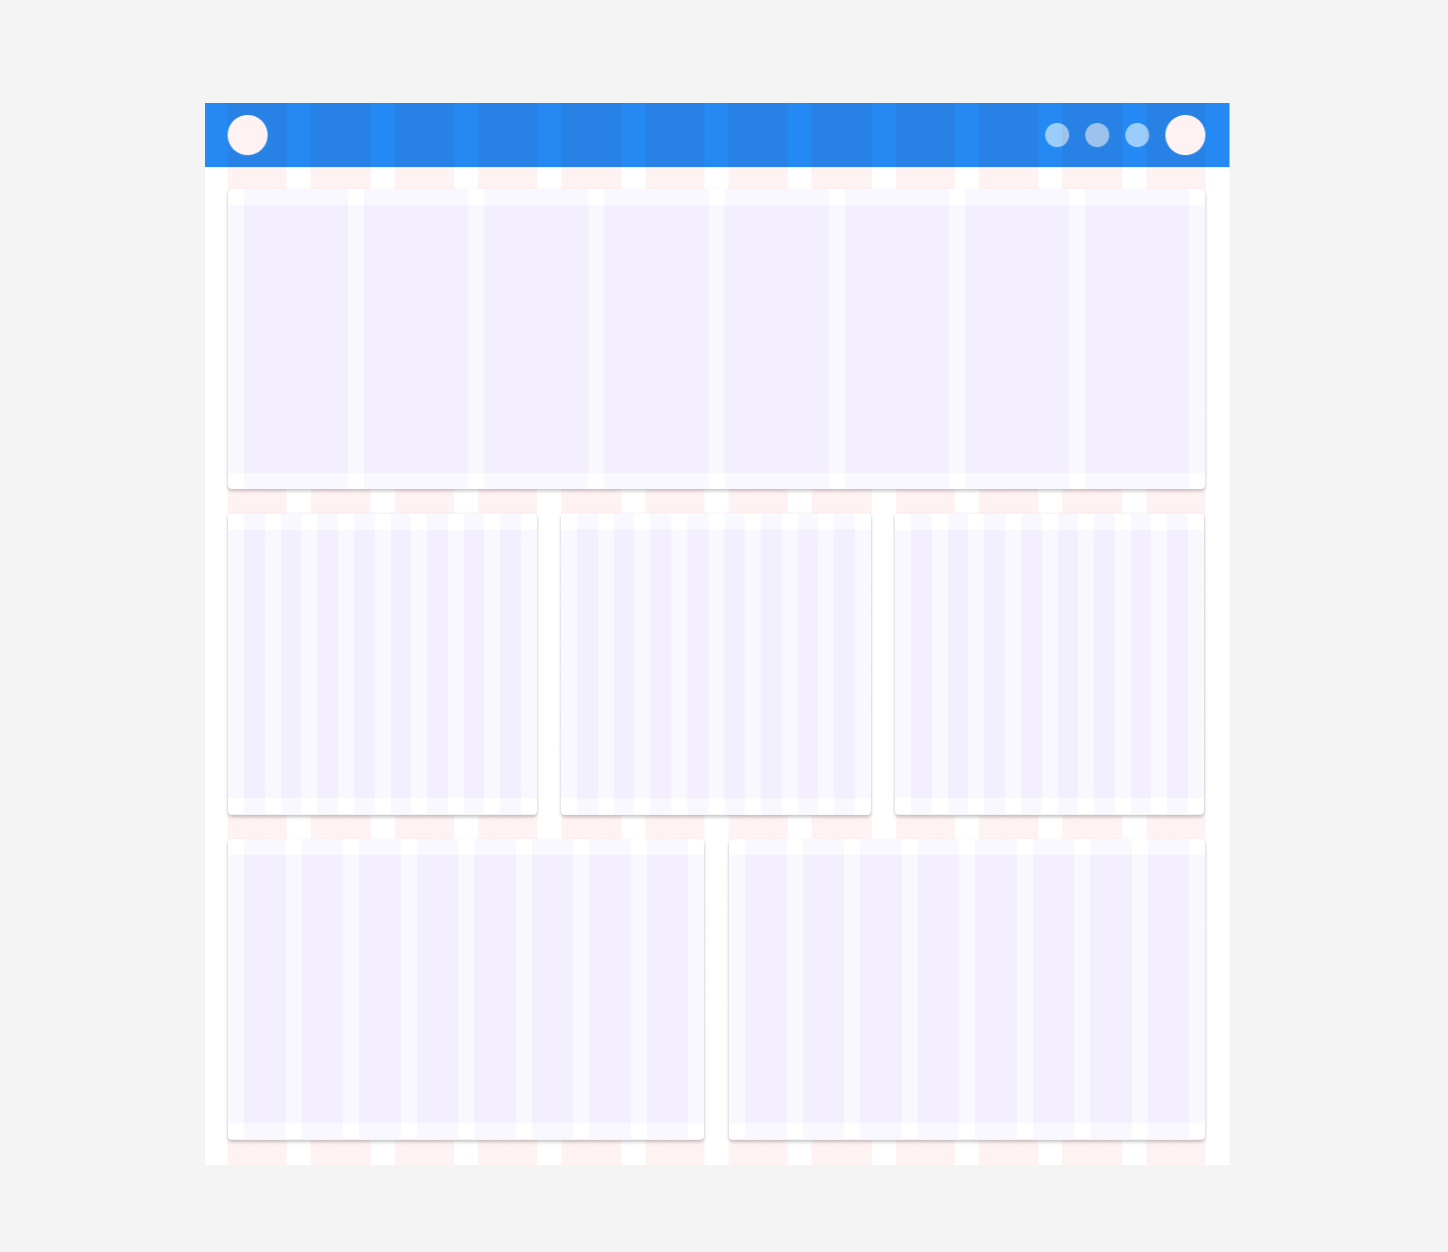 Everything You Need To Know As A Ui Designer About Spacing Layout Grids By Molly Hellmuth Design With Figma Medium